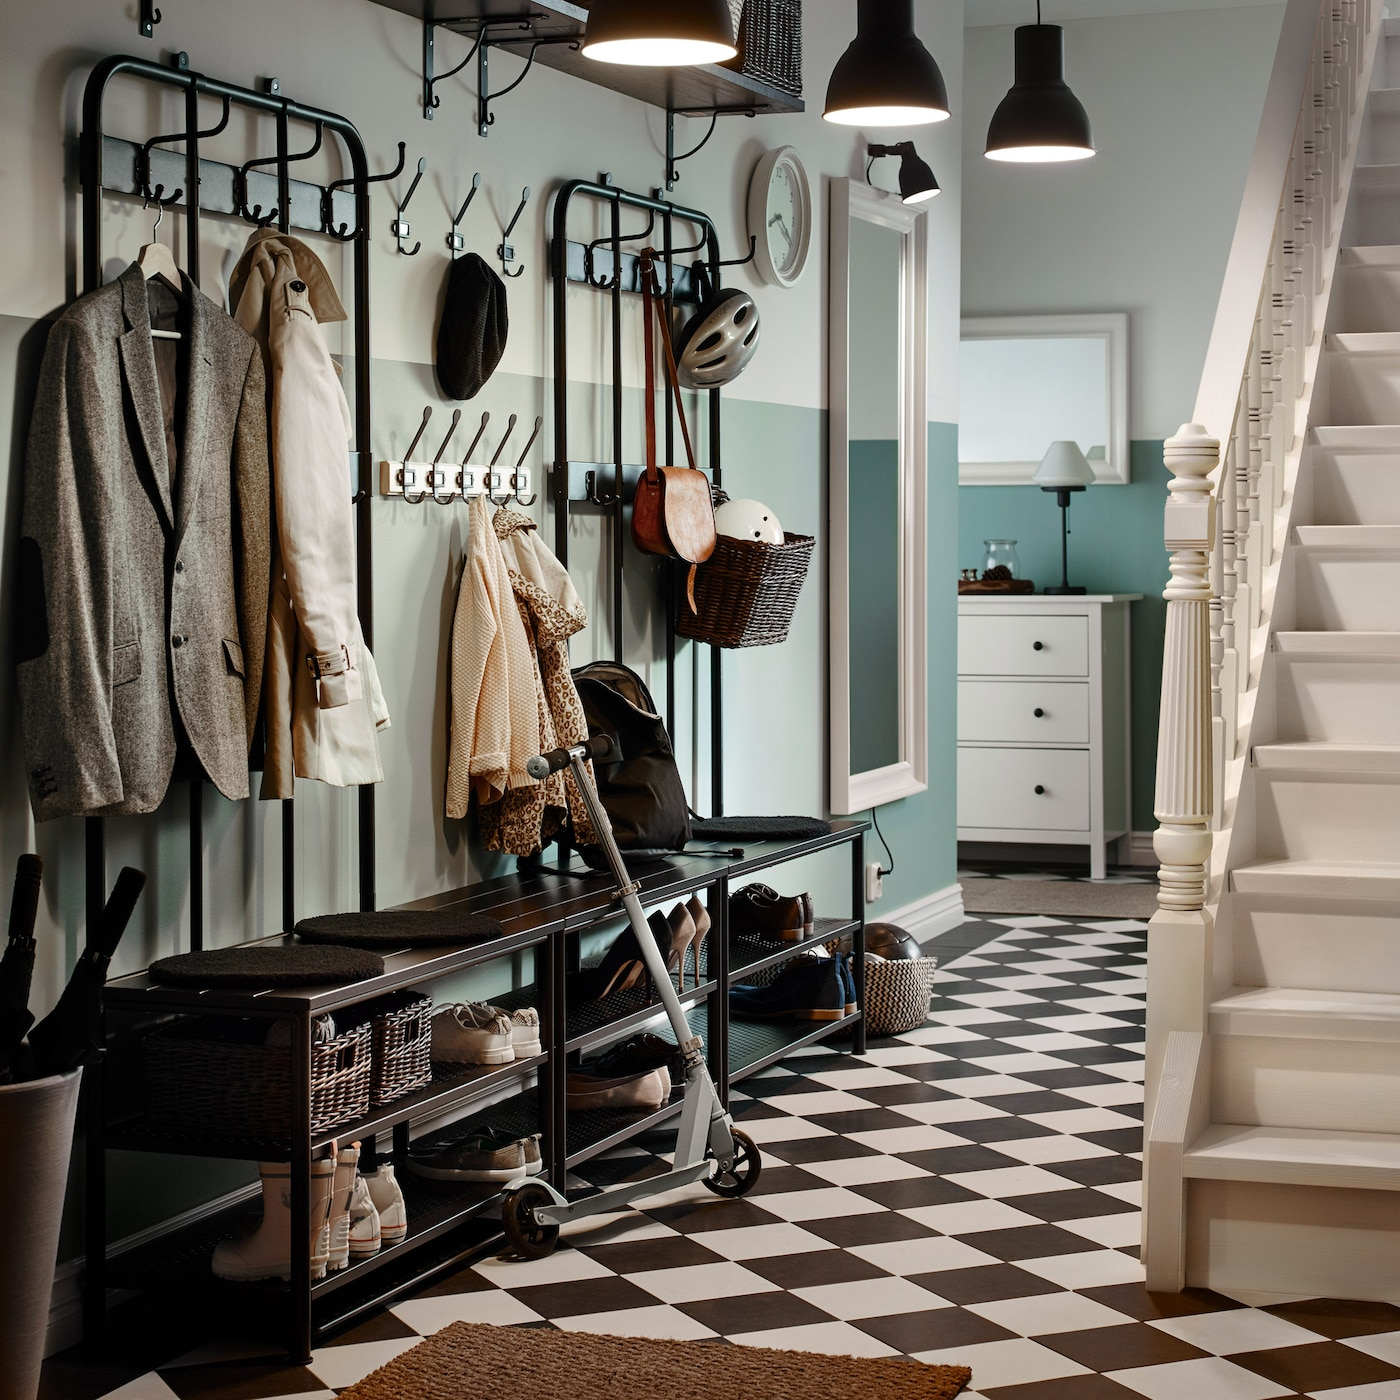 Traditional hallway with a black and white floor and two black, steel clothes racks next to each other to store clothes, shoes and accessories.